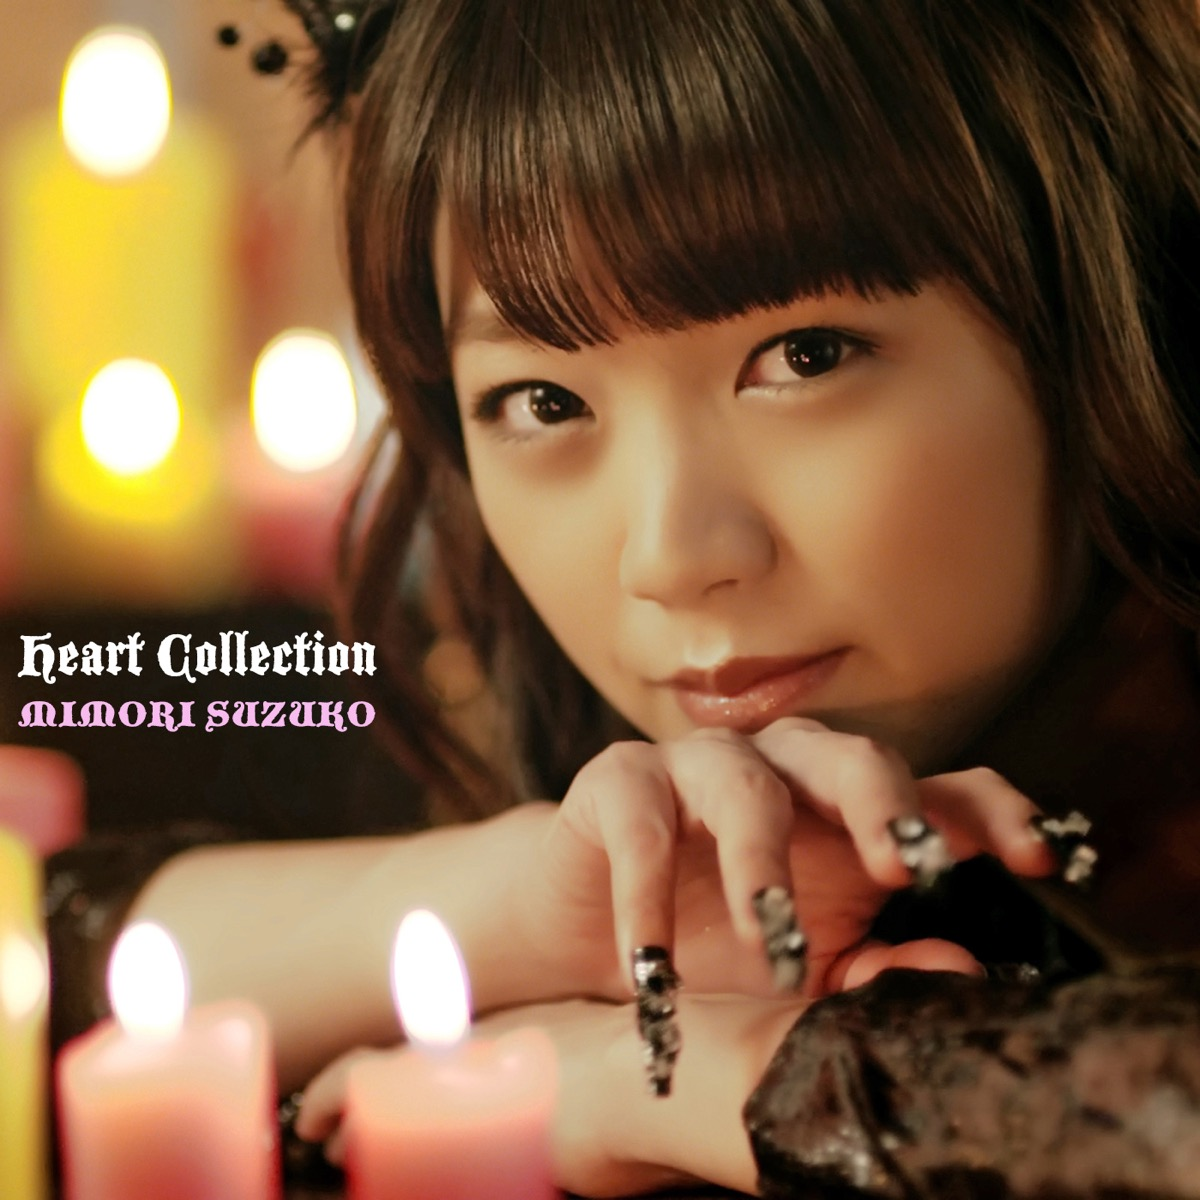 Download Mimori Suzuko - Heart Collection Single Artist Mimori Suzuko Single Heart Collection Released 2015.02.25 Tracklist Heart Collection Download Mimori Suzuko - Heart Collection Single 2015.02.25 Mimori Suzuko - Heart Collection...